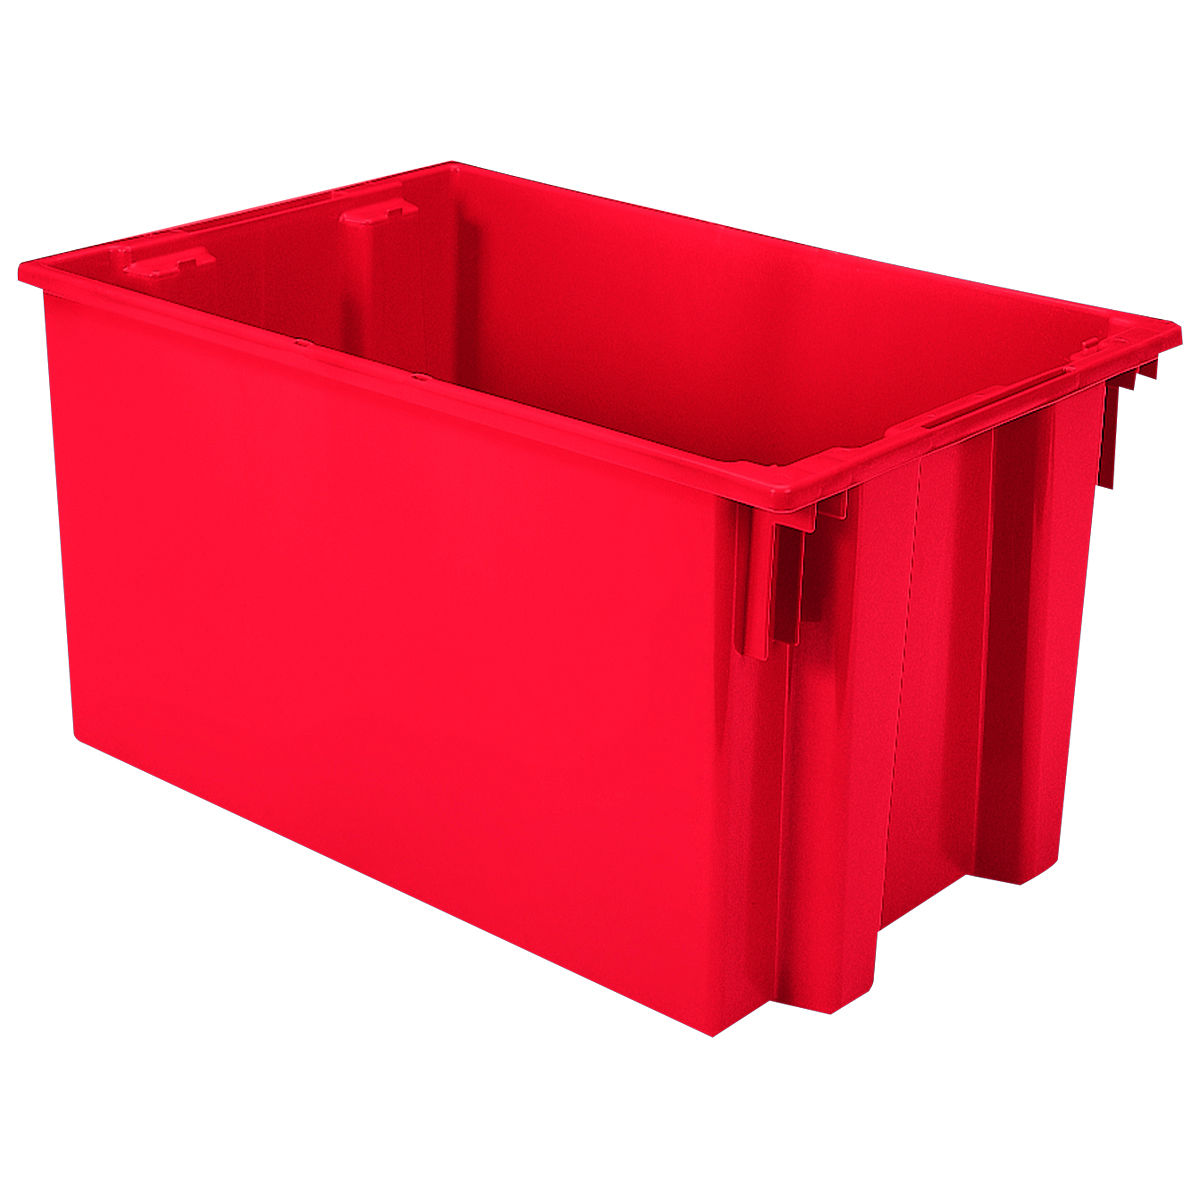 Nest & Stack Tote 29-1/2 x 19-1/2 x 15, Red (35300RED).  This item sold in carton quantities of 3.